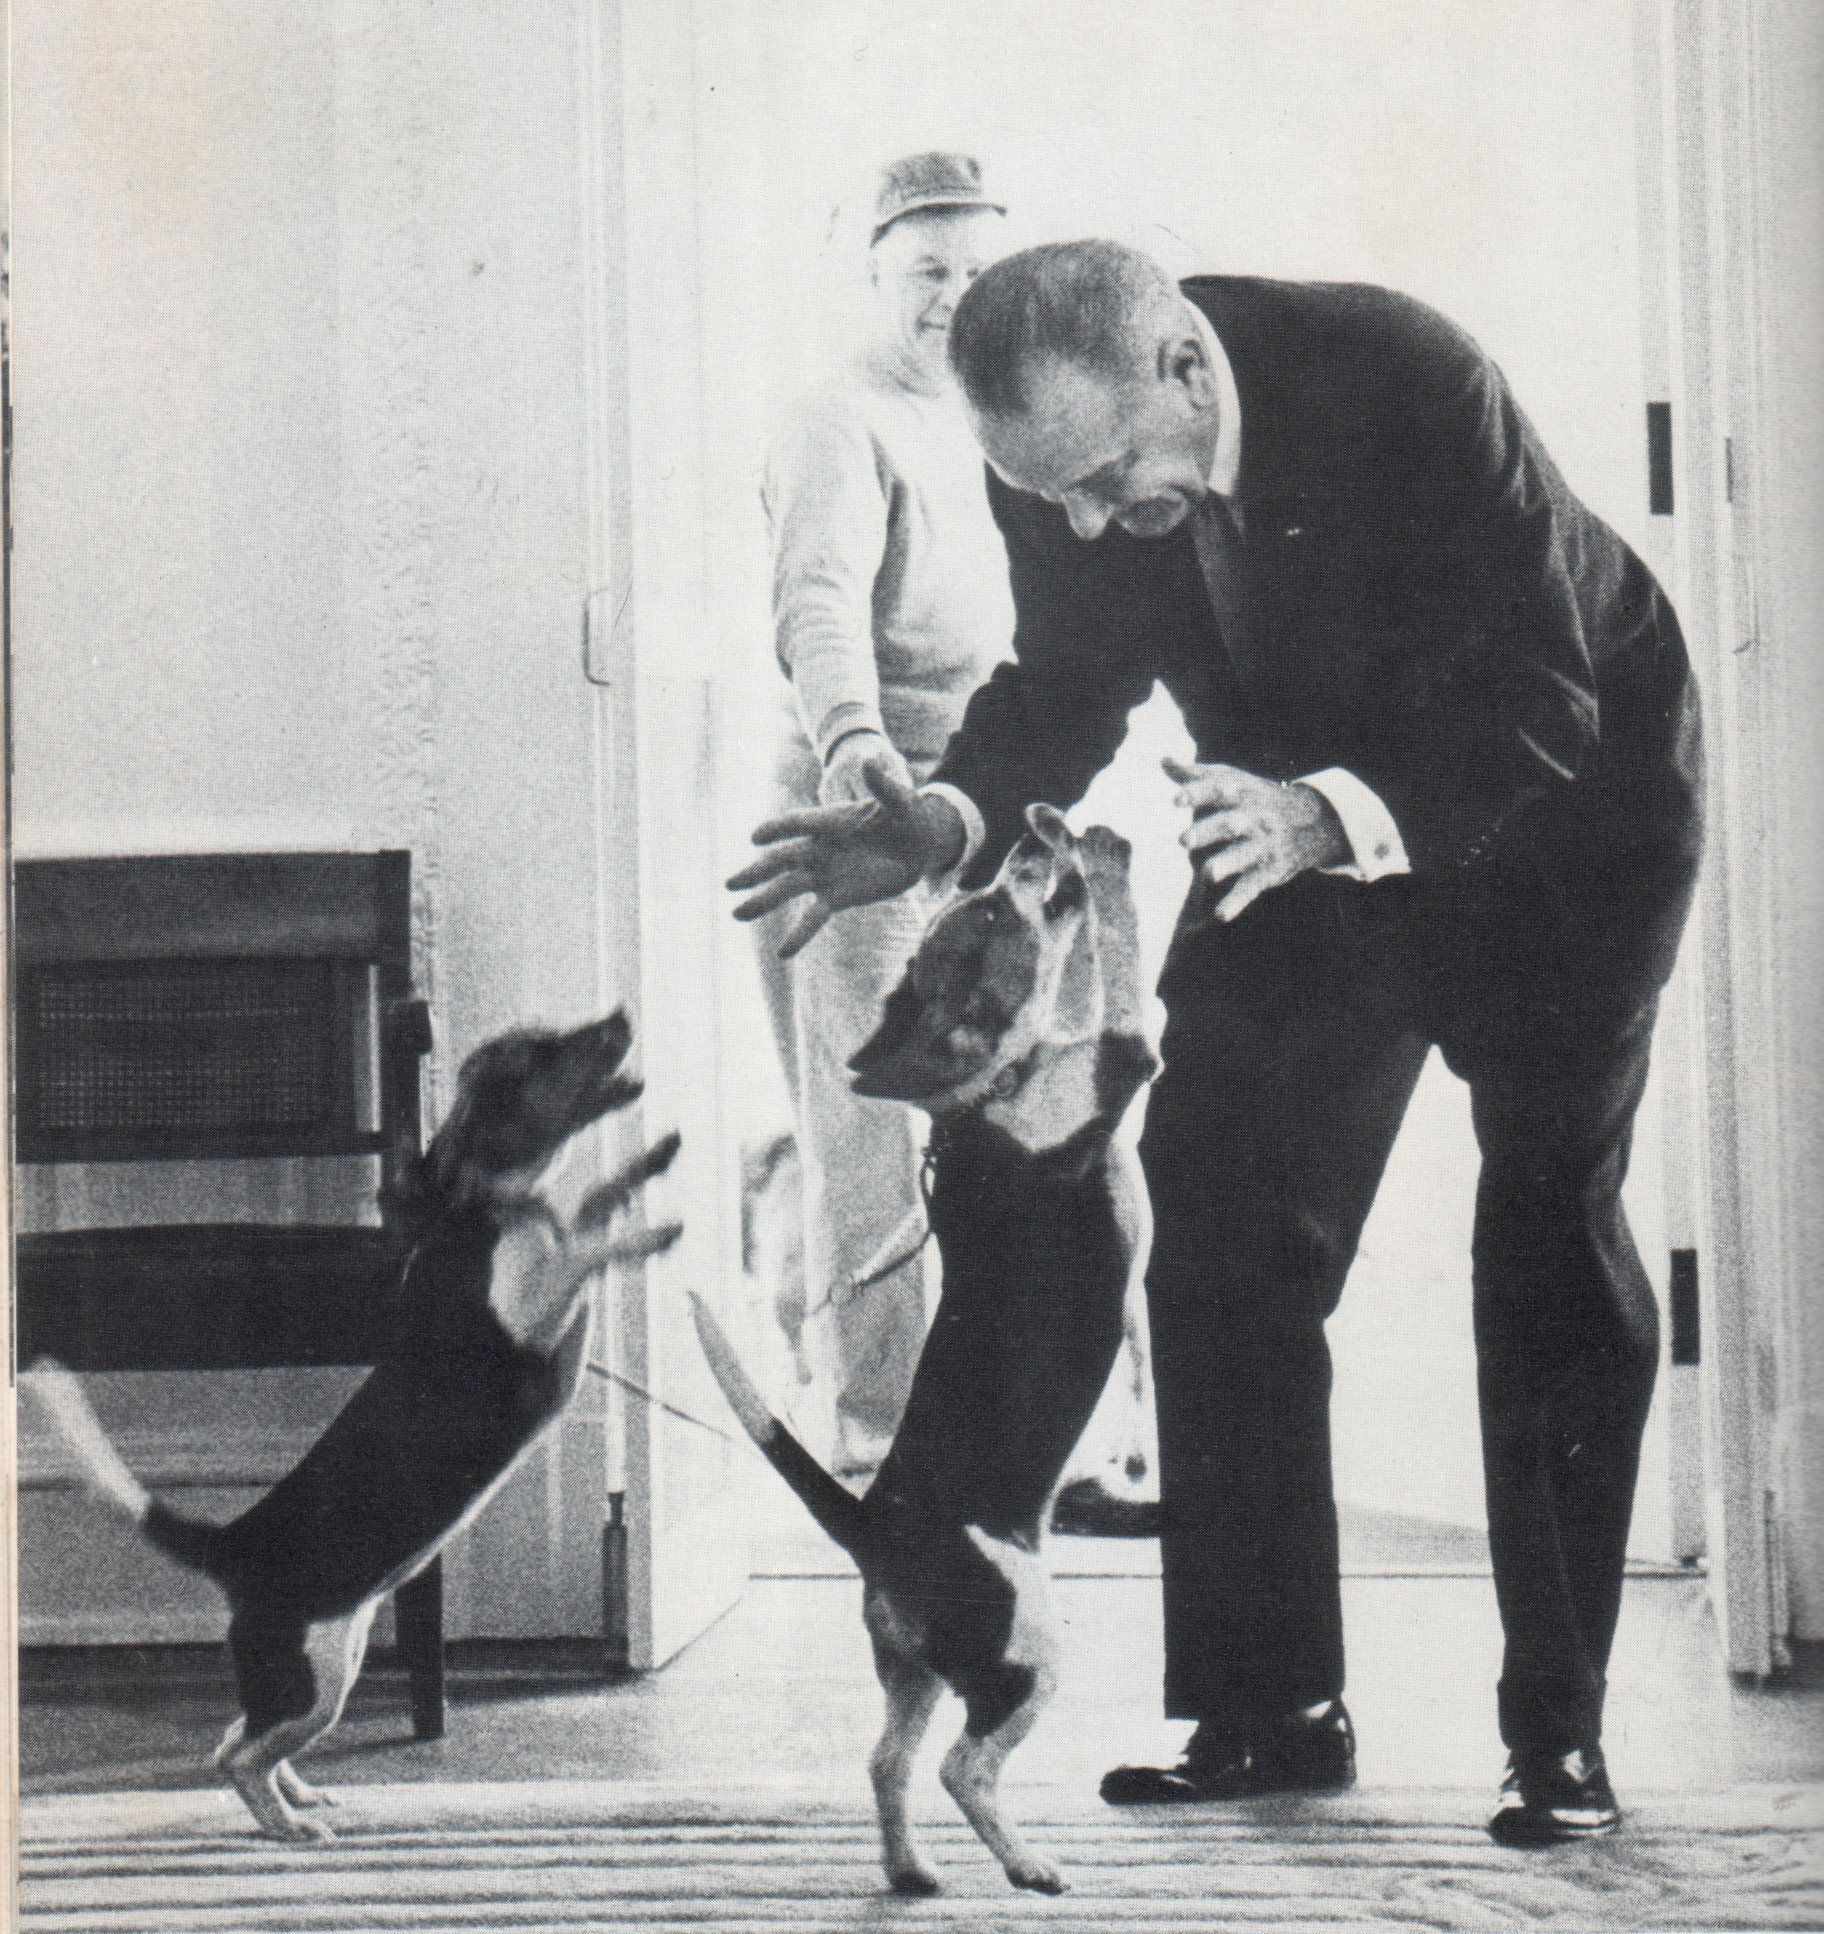 Lbj S Beagle Run Over And Killed In White House Driveway Beagle